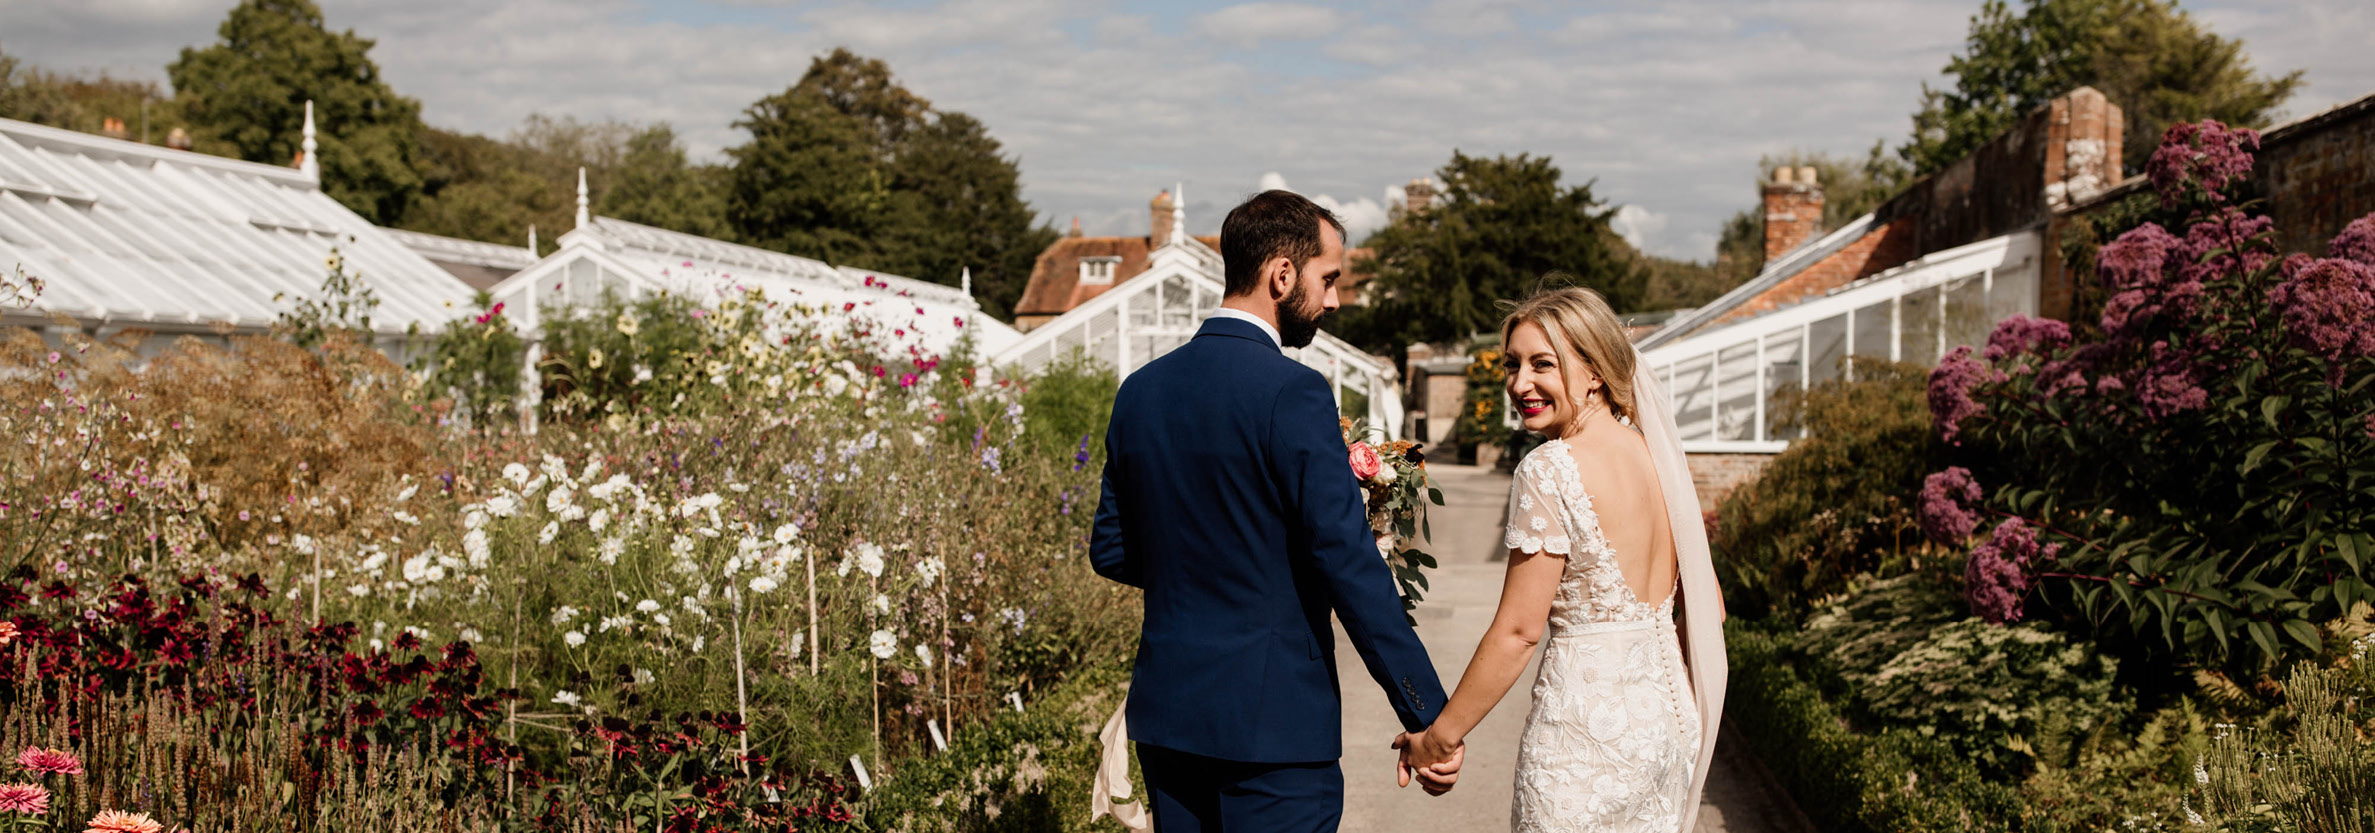 Bride and Groom in the Walled Garden at West Dean Gardens. Credit Esme Ducker Photography